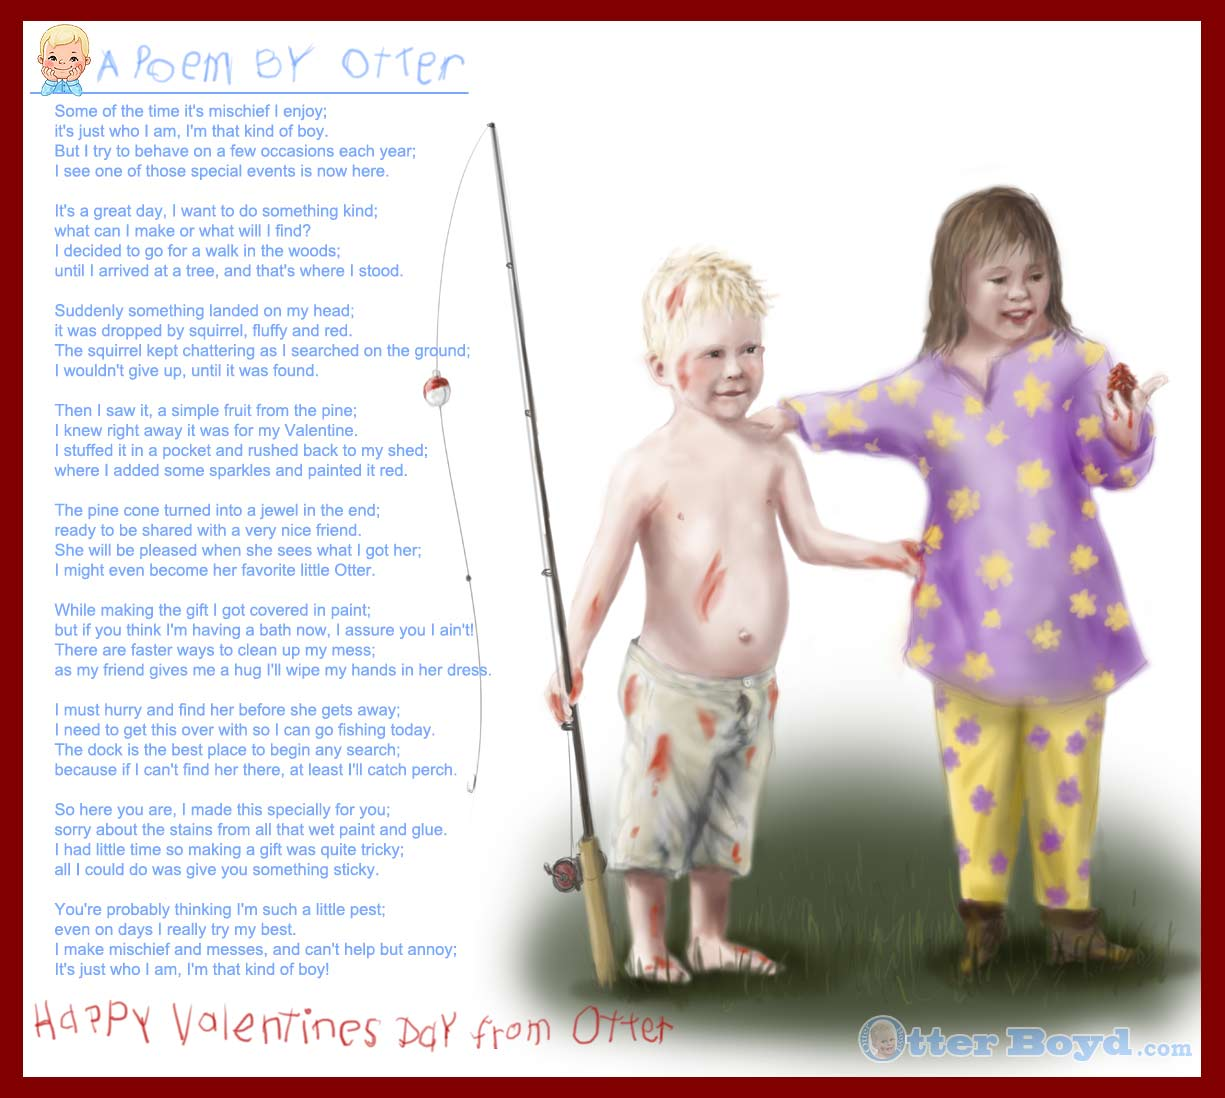 otters valentines day poem painting of a boy with a fishing rod and girl with gift